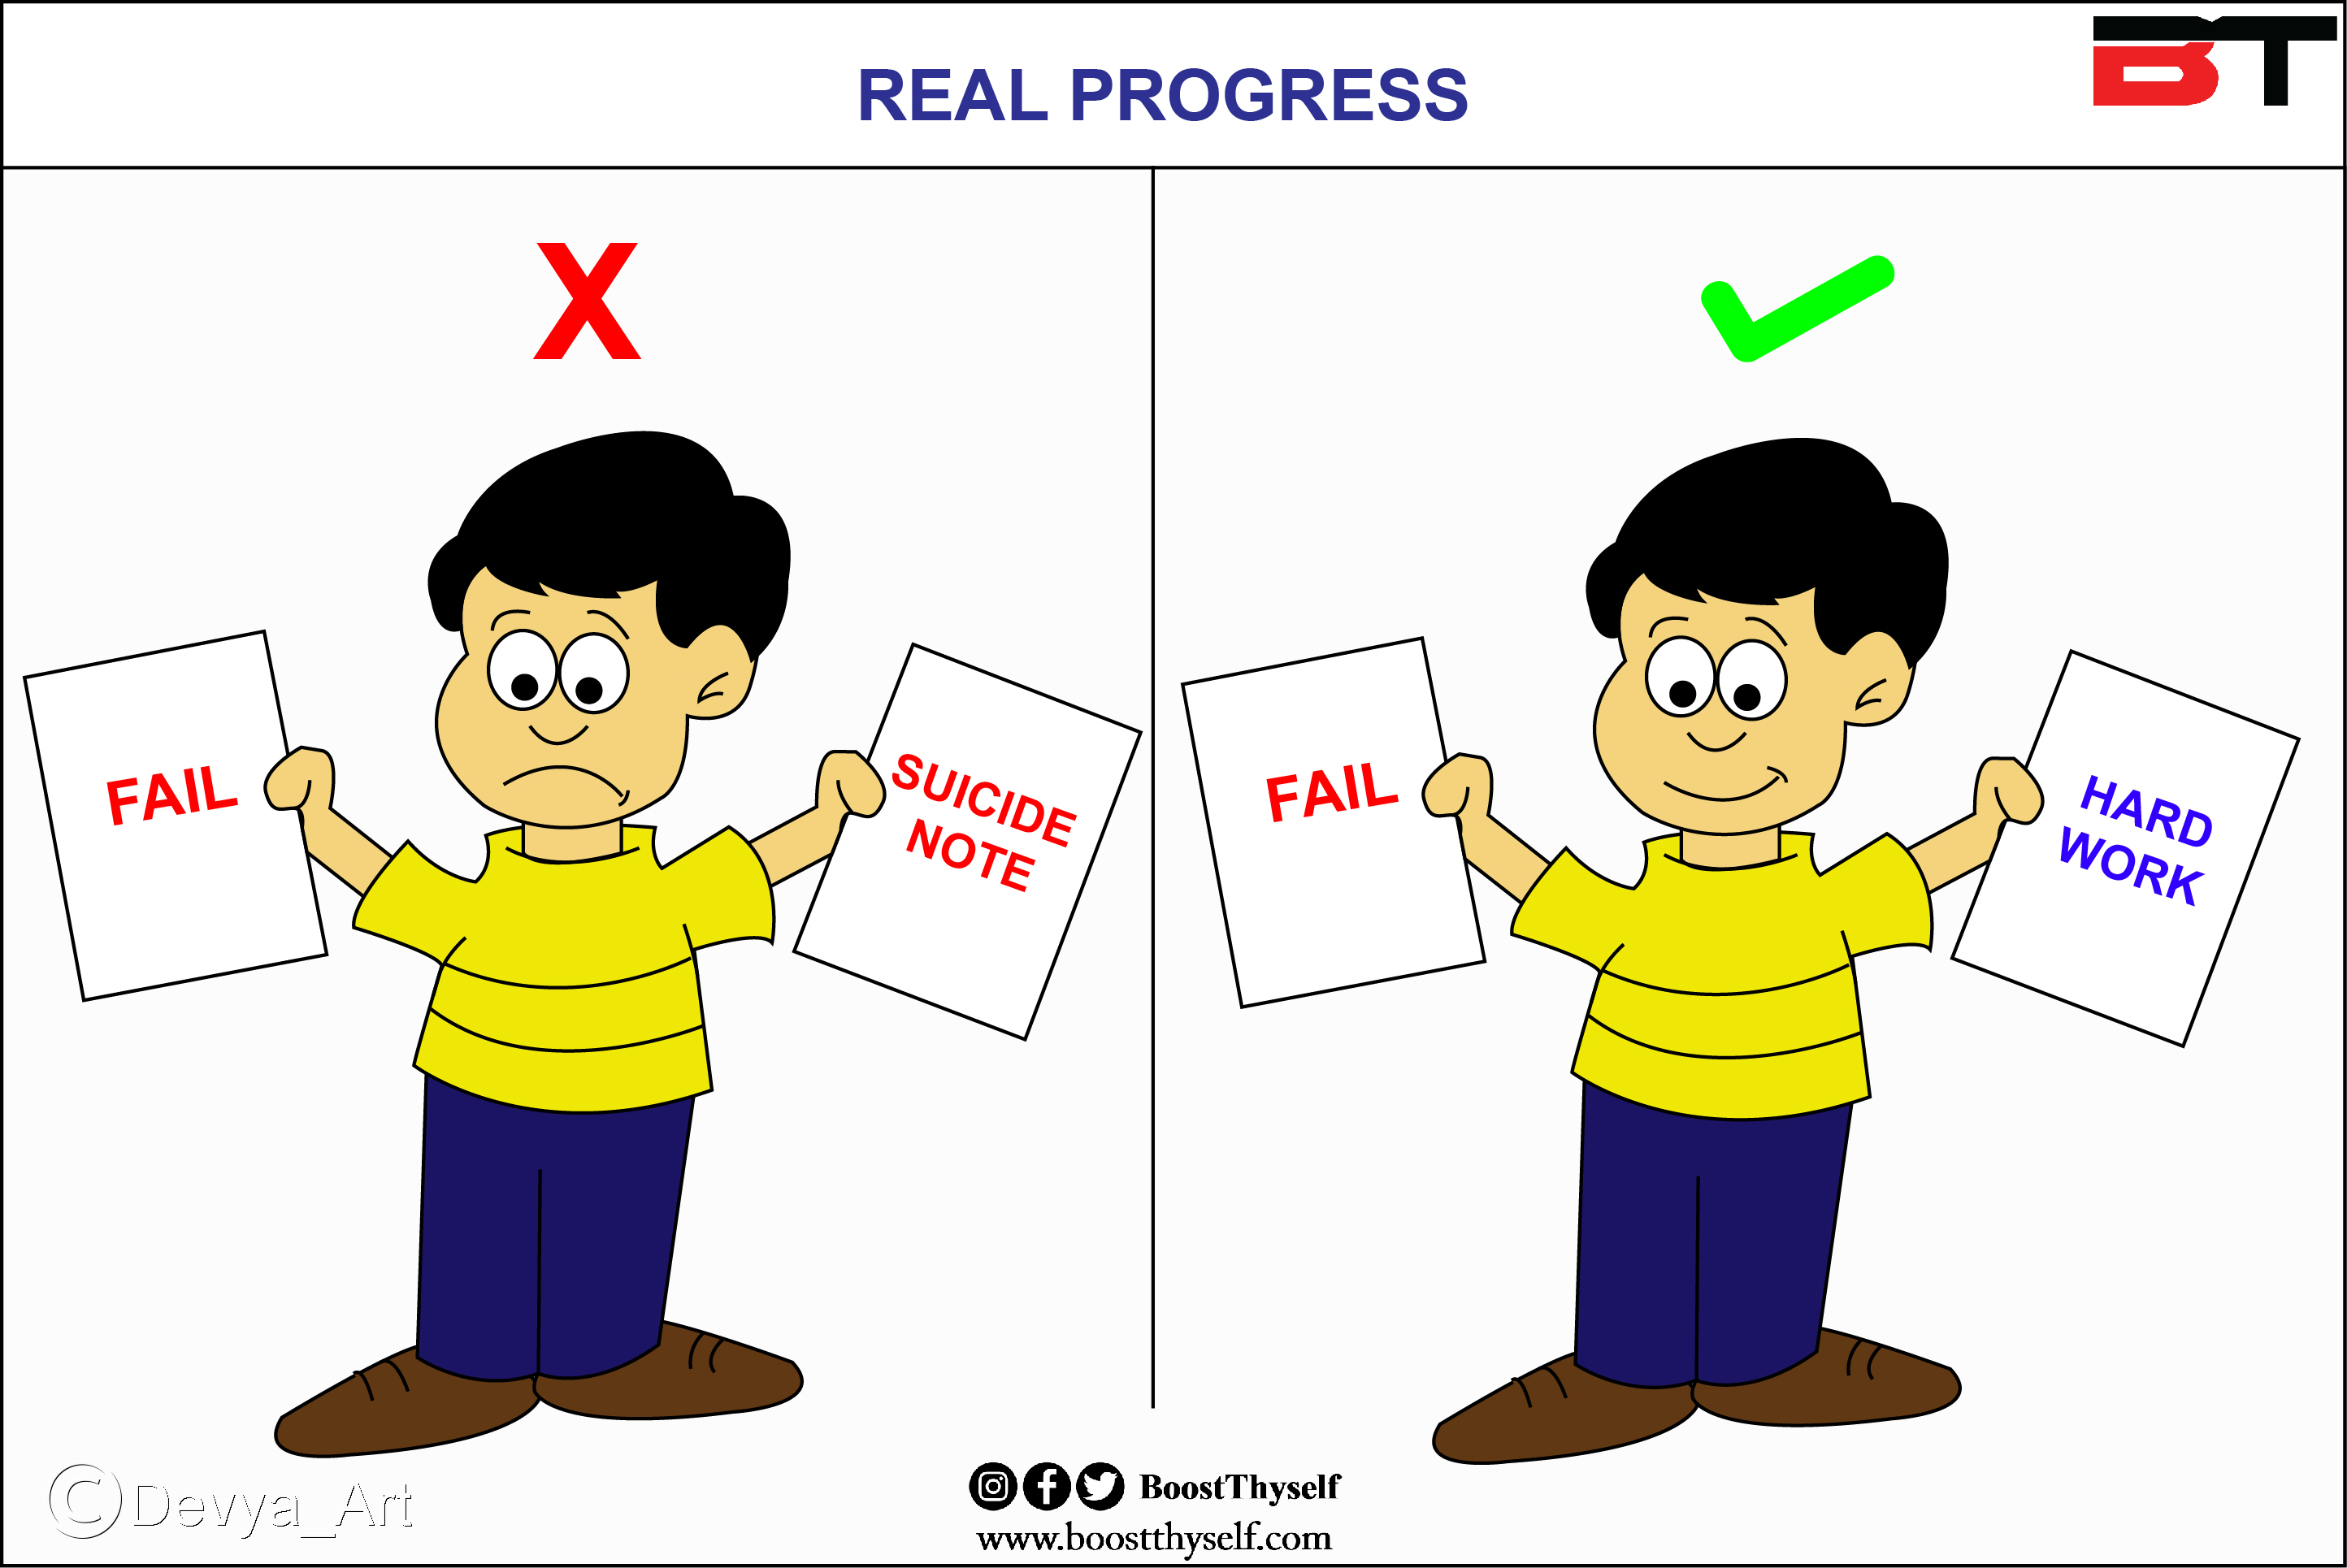 What the Real Progress is?